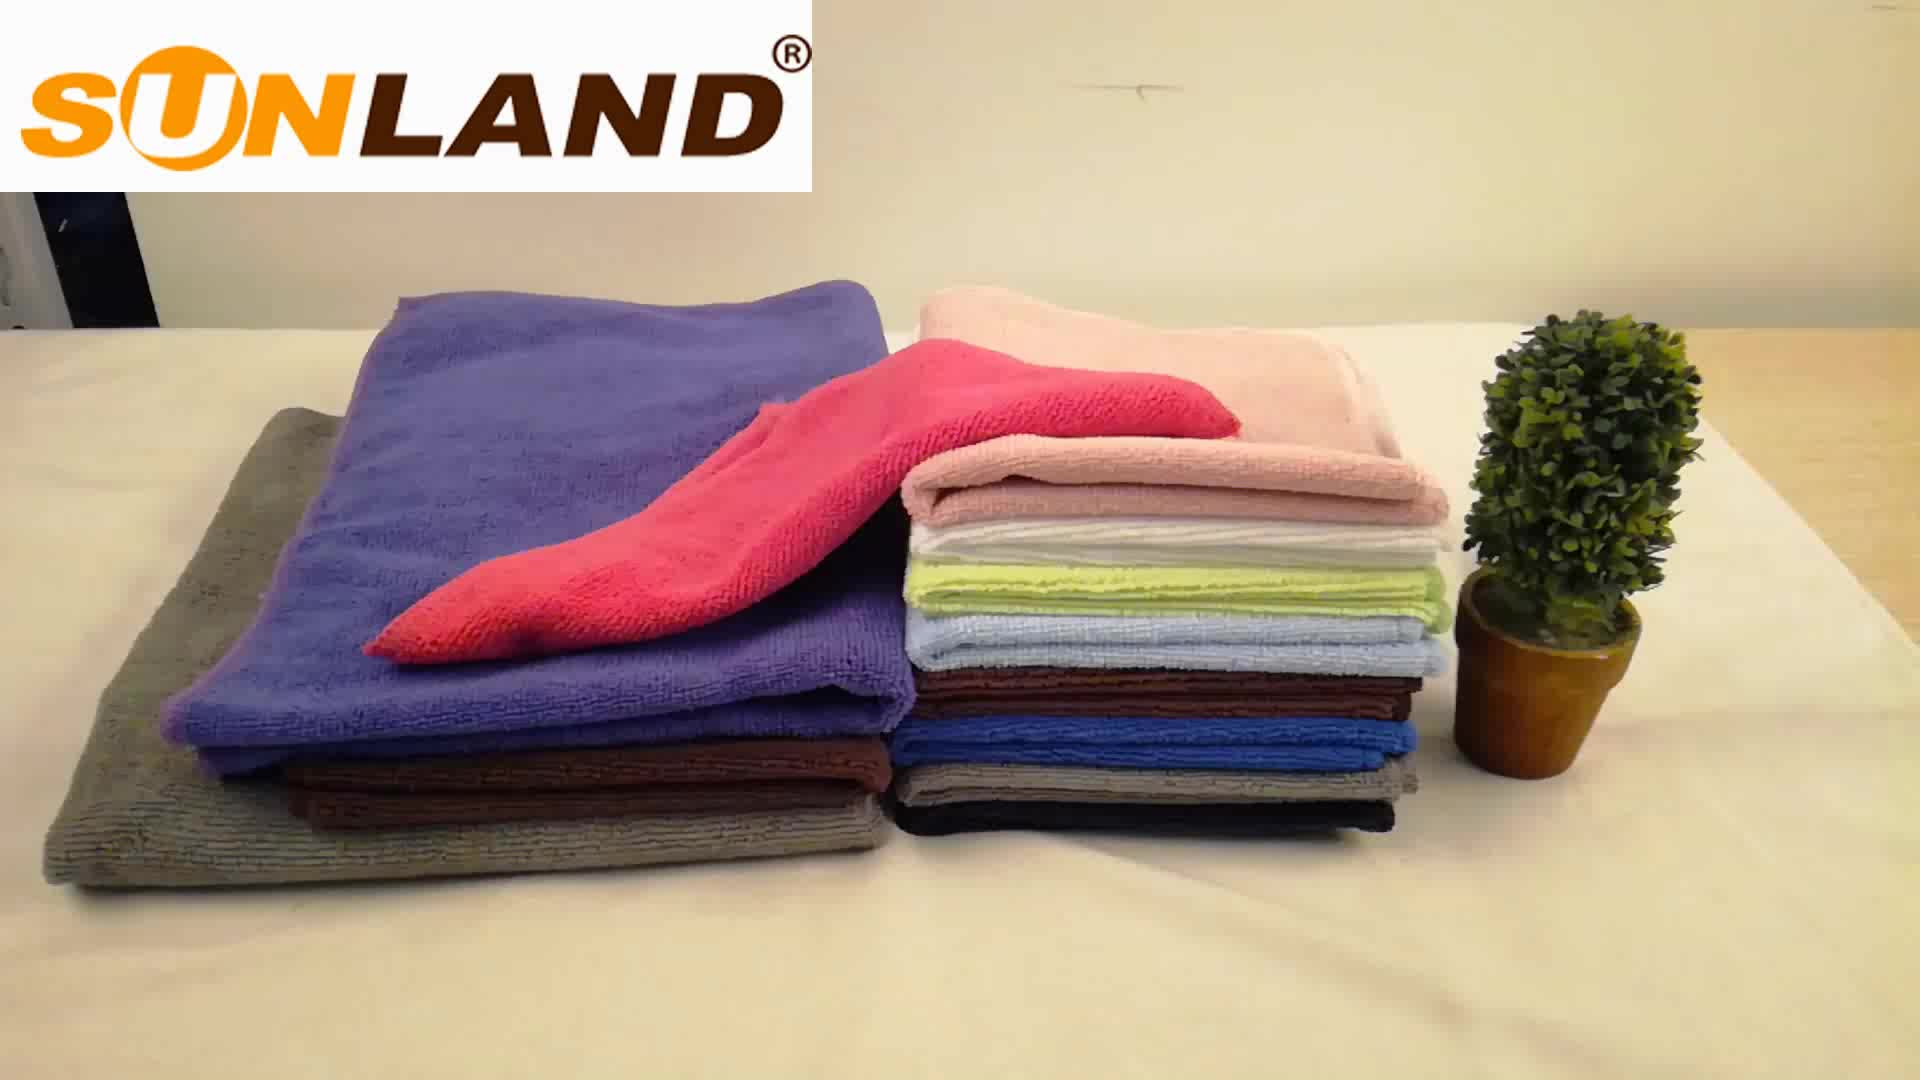 Sunland multi-purpose water absorbent household cleaning cloth/towels